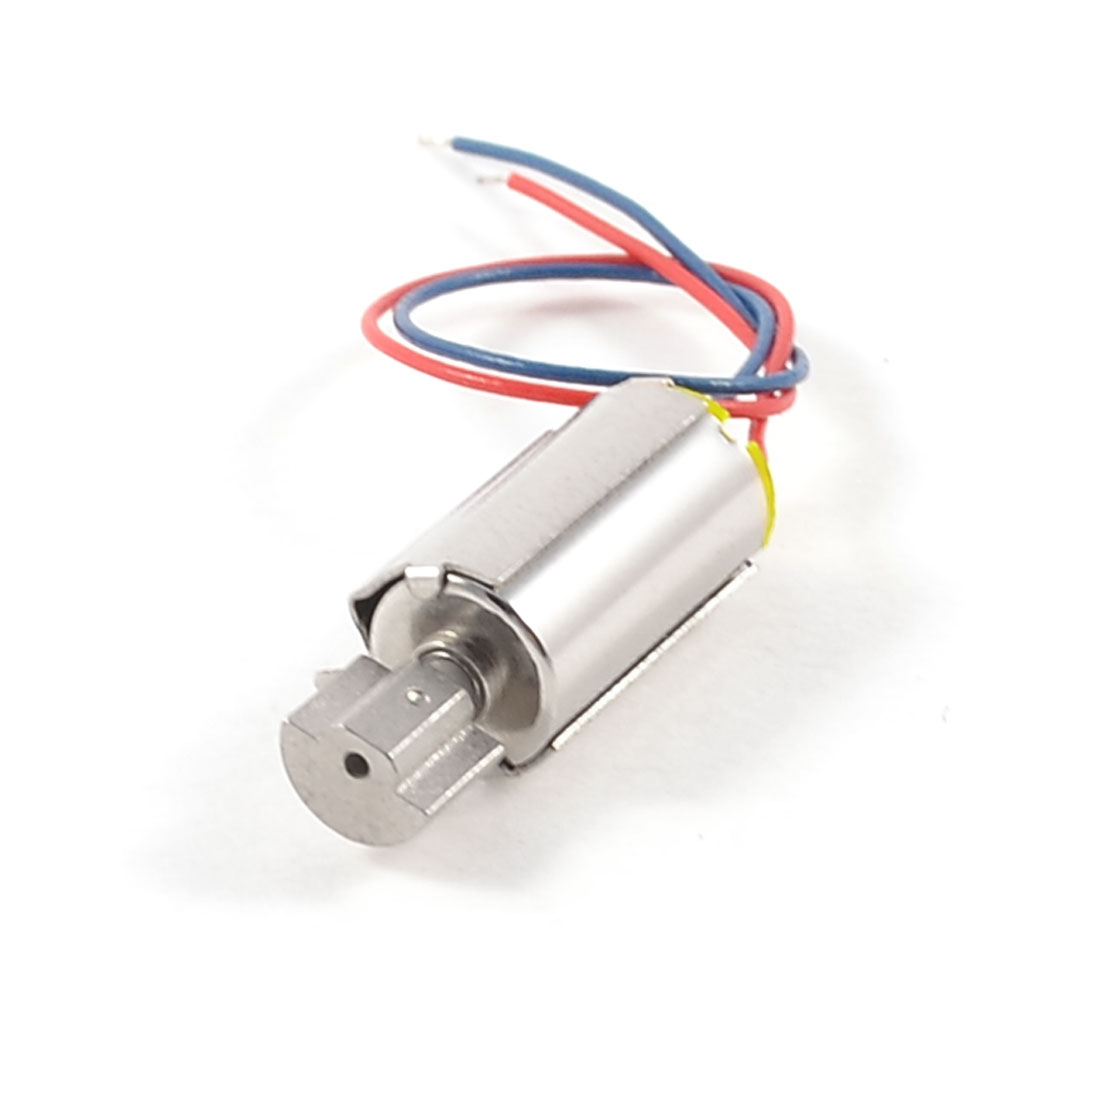 Model-DIY-Toys-Vibrating-DC-Mini-Coreless-Motor-1-5V-60mA-9000-2000RPM